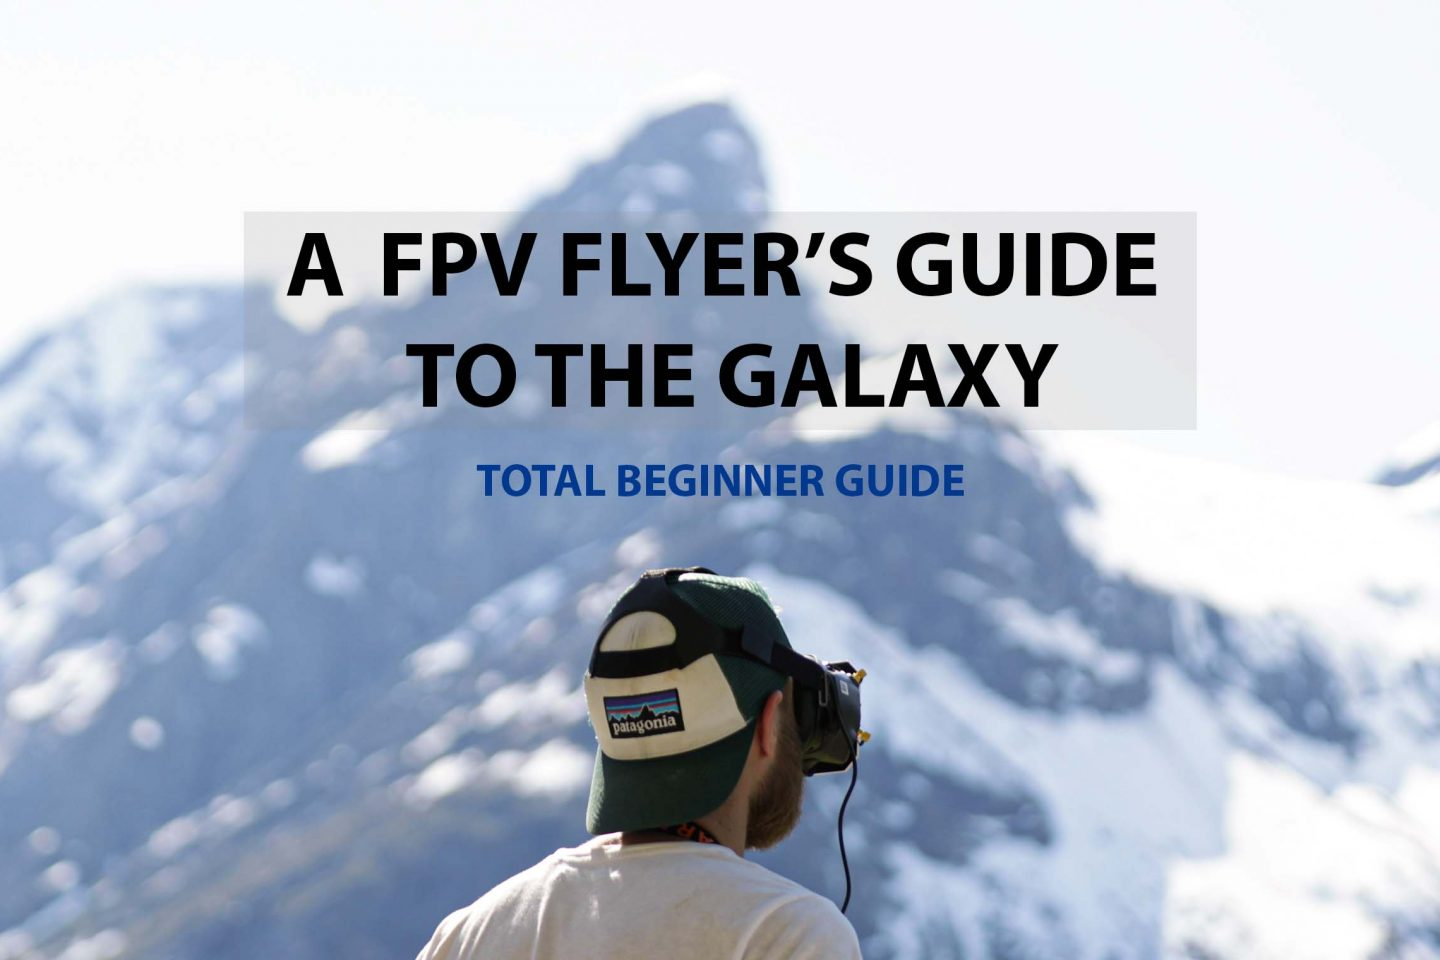 FPV Guide for beginners